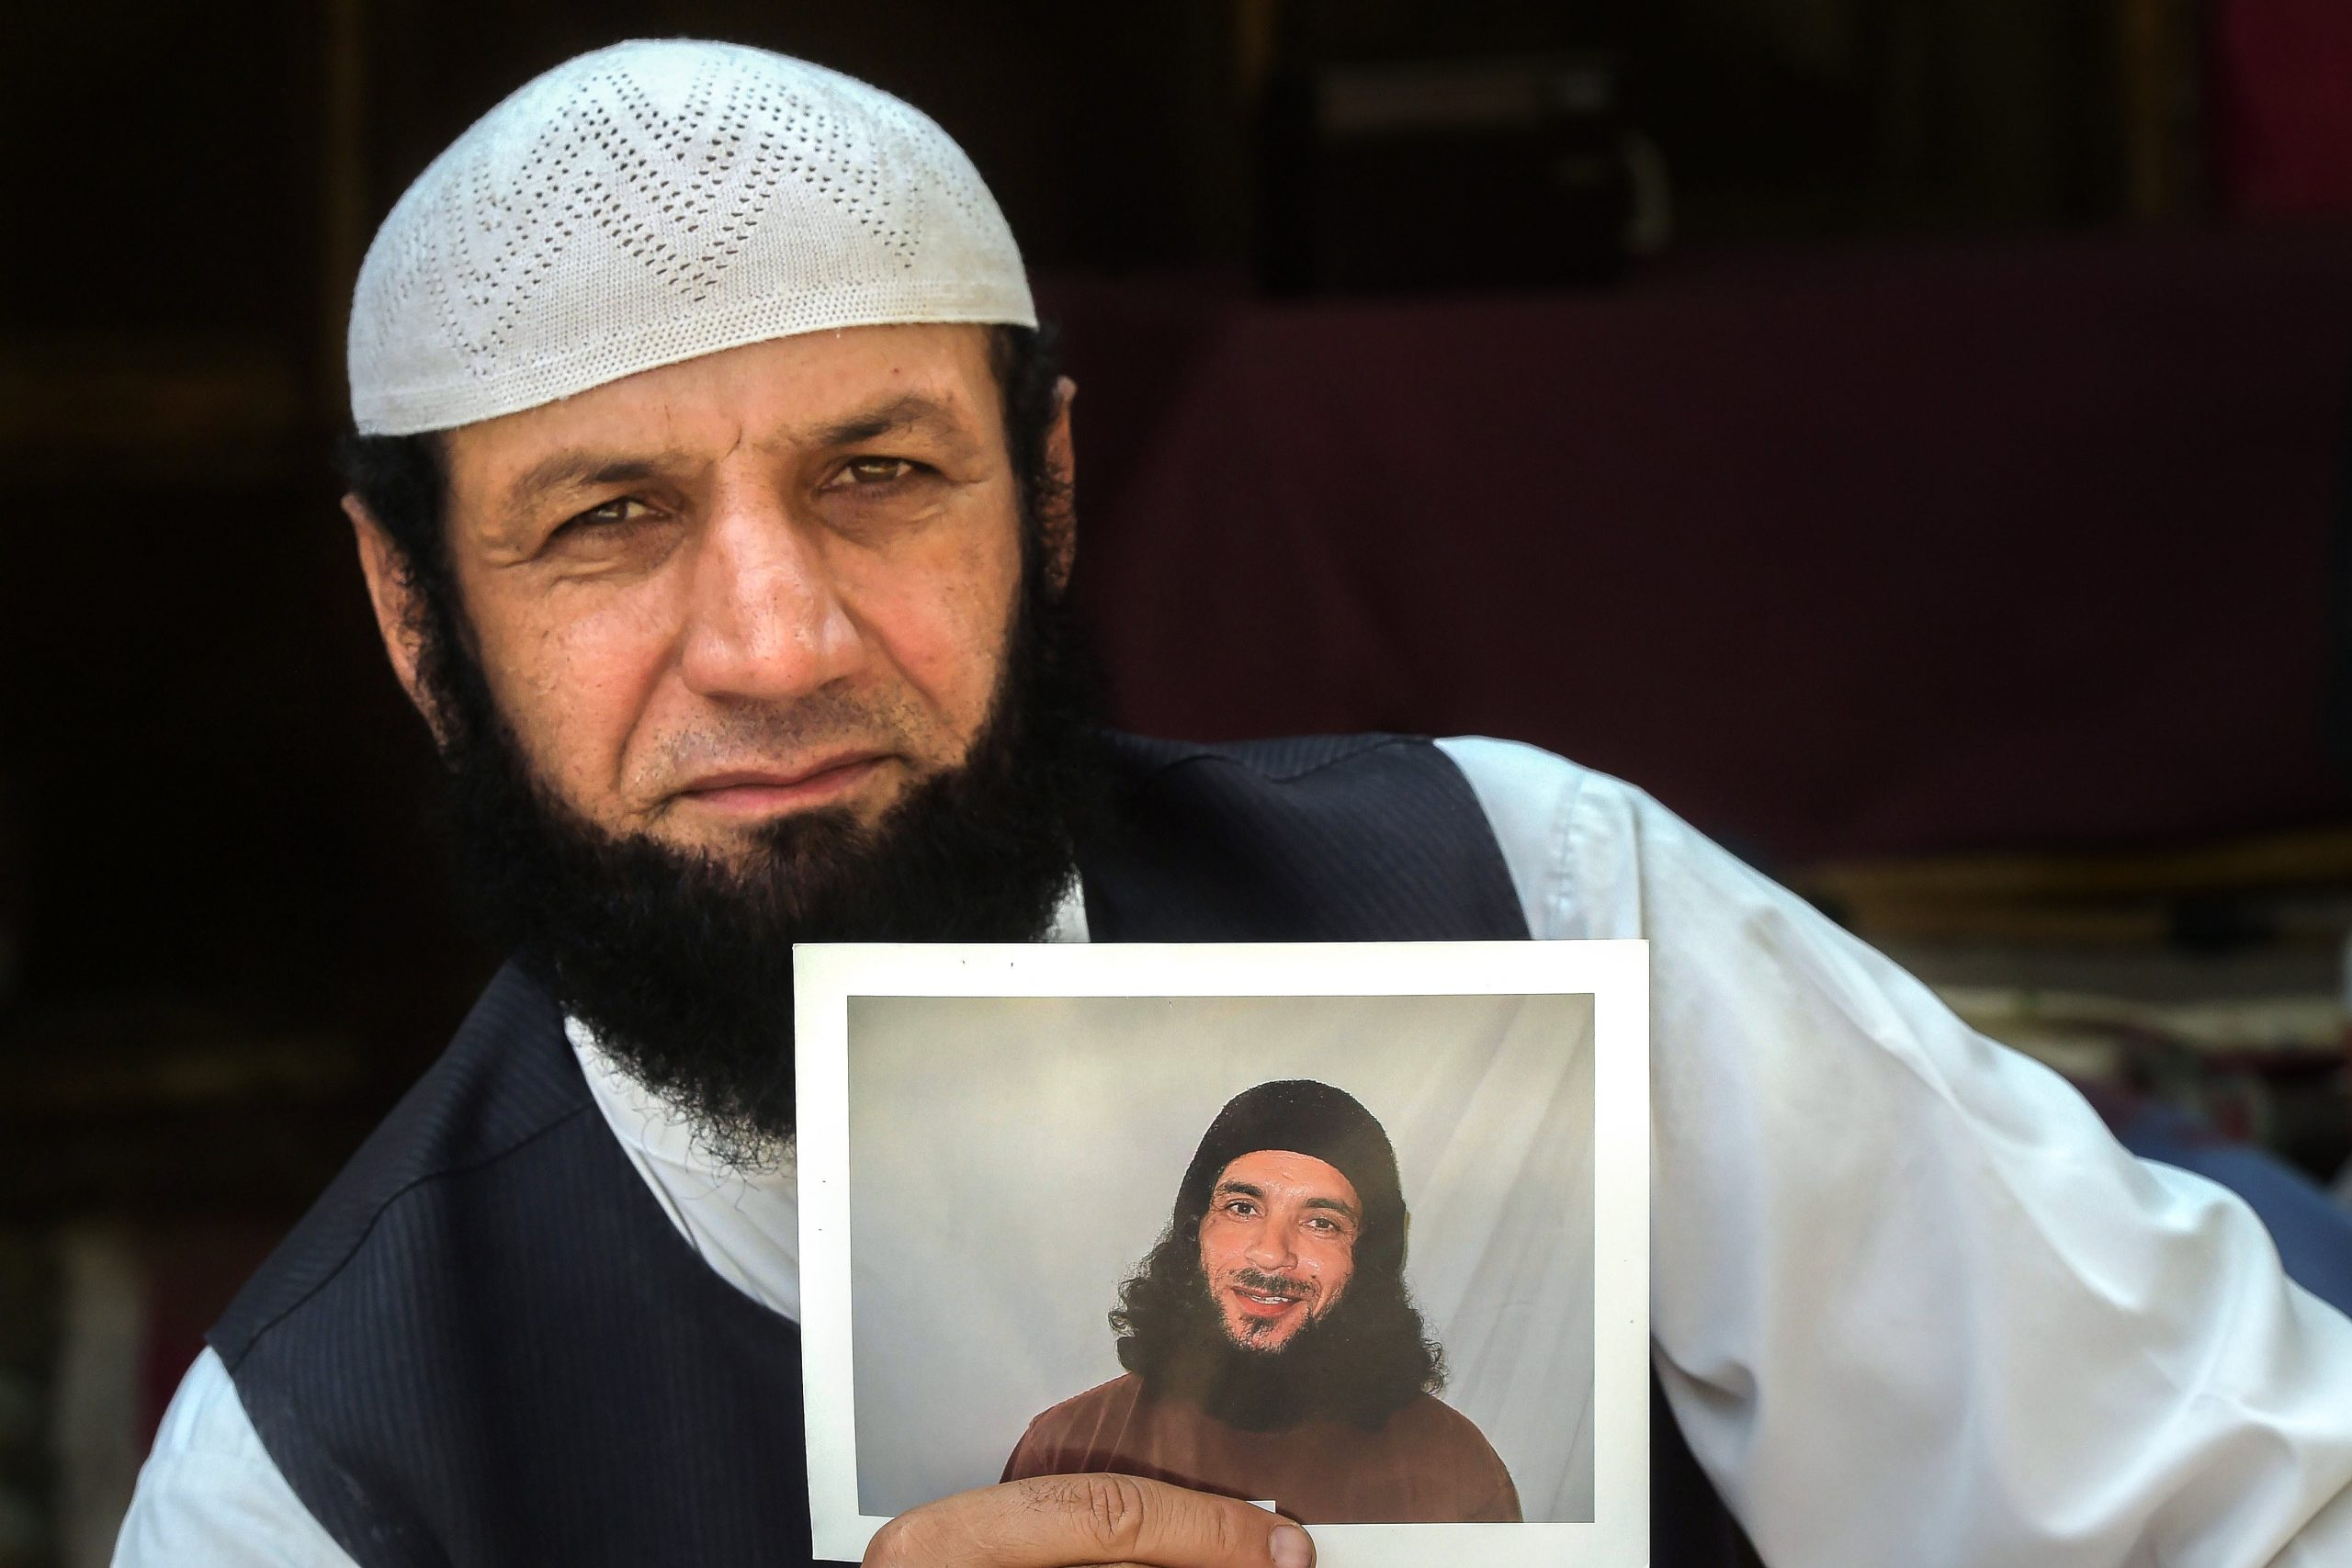 In this picture taken on September 25, 2020, Afghan refugee Roman Khan displays a photograph of his brother Asadullah Haroon, who is detained in Guantanamo Bay detention camp, during an interview with AFP in Shamshatu refugee camp near Pakistan's northwestern city of Peshawar. - Hundreds of prisoners including senior Taliban leaders have been released from the notorious US military detention centre, but Asadullah Haroon, who has never been charged with a crime, remains. (Photo by Abdul MAJEED / AFP) / To go with 'AFGHANISTAN-GUANTANAMO-PRISONERS', FOCUS by David Stout and Sajjad Tarakzai (Photo by ABDUL MAJEED/AFP via Getty Images)